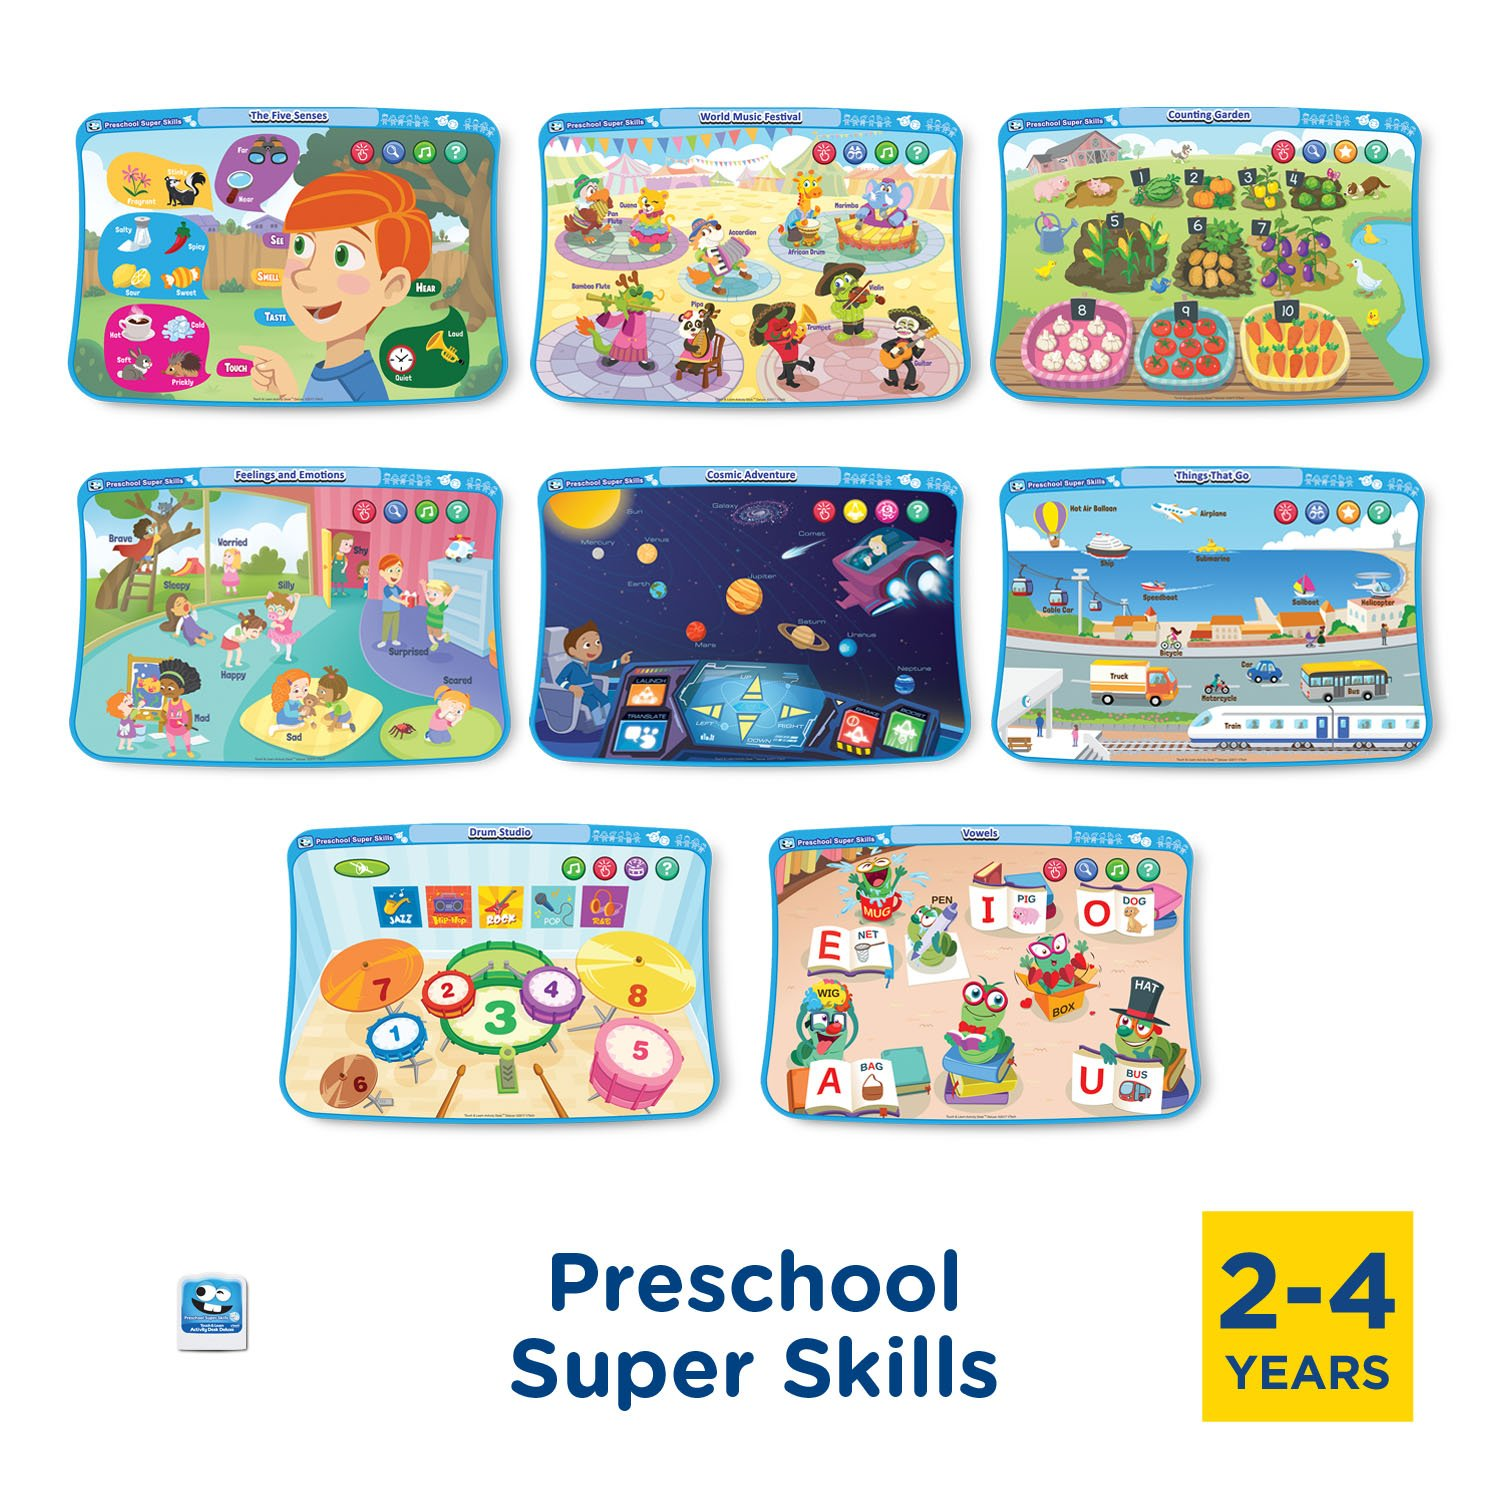 VTech Touch & Learn Activity Desk Deluxe 2-in-1 Preschool Bundle Expansion Pack for Age 2-4 by VTech (Image #2)